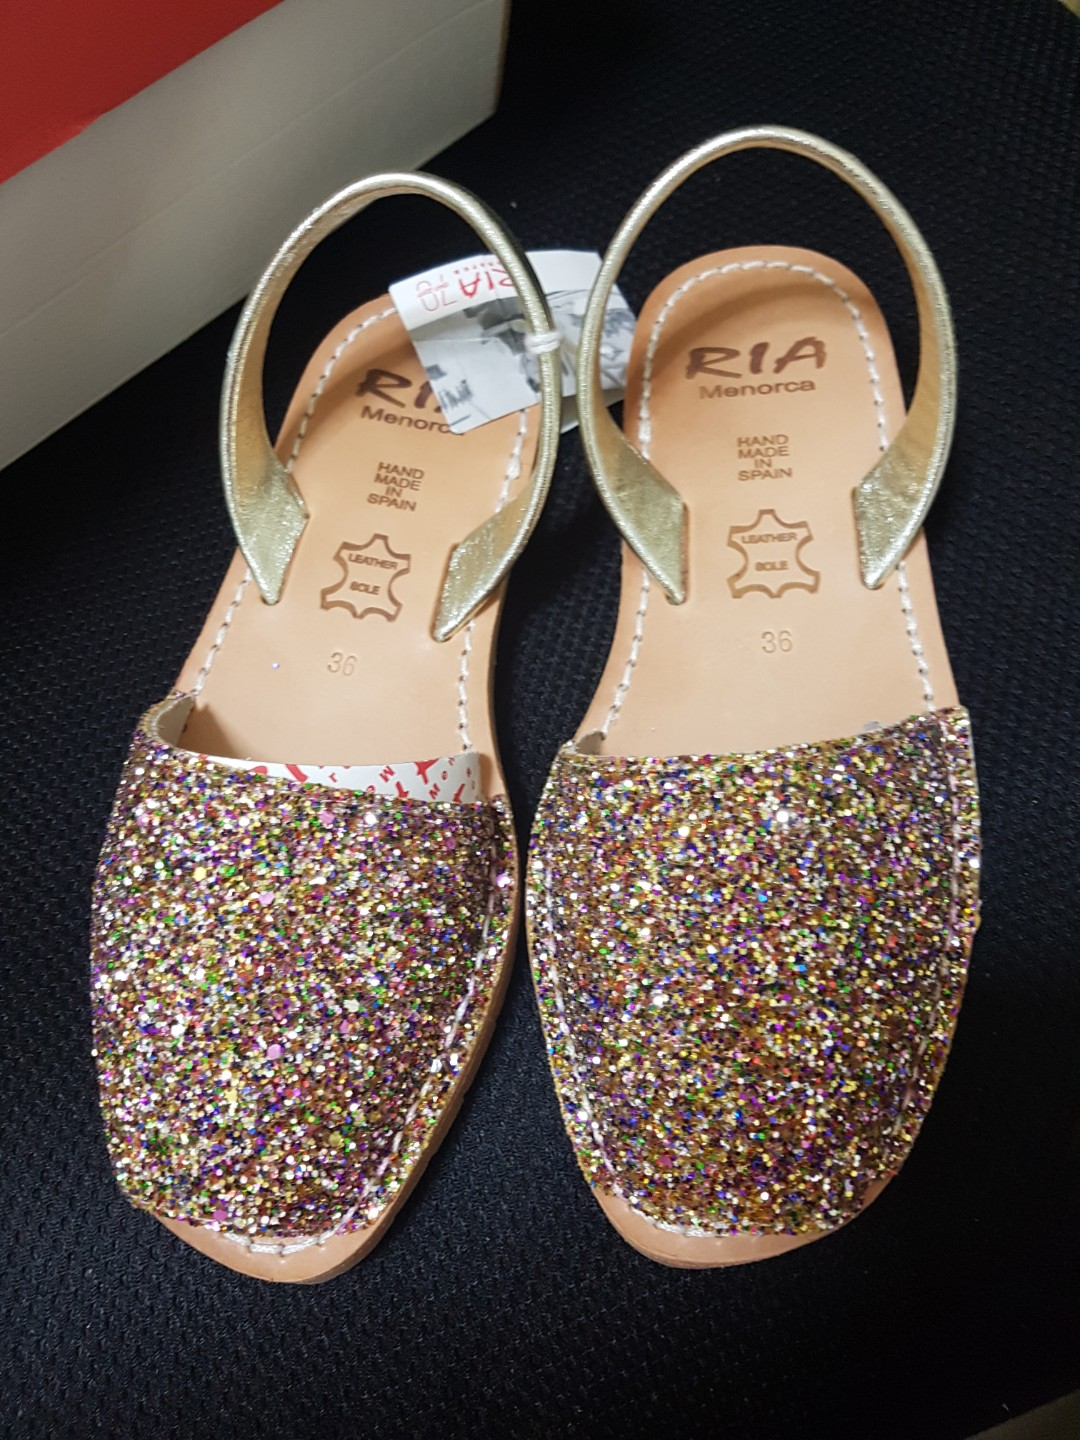 e3123a8ed Brand new Ria Menorca flat sandles with Bling (Size 36)